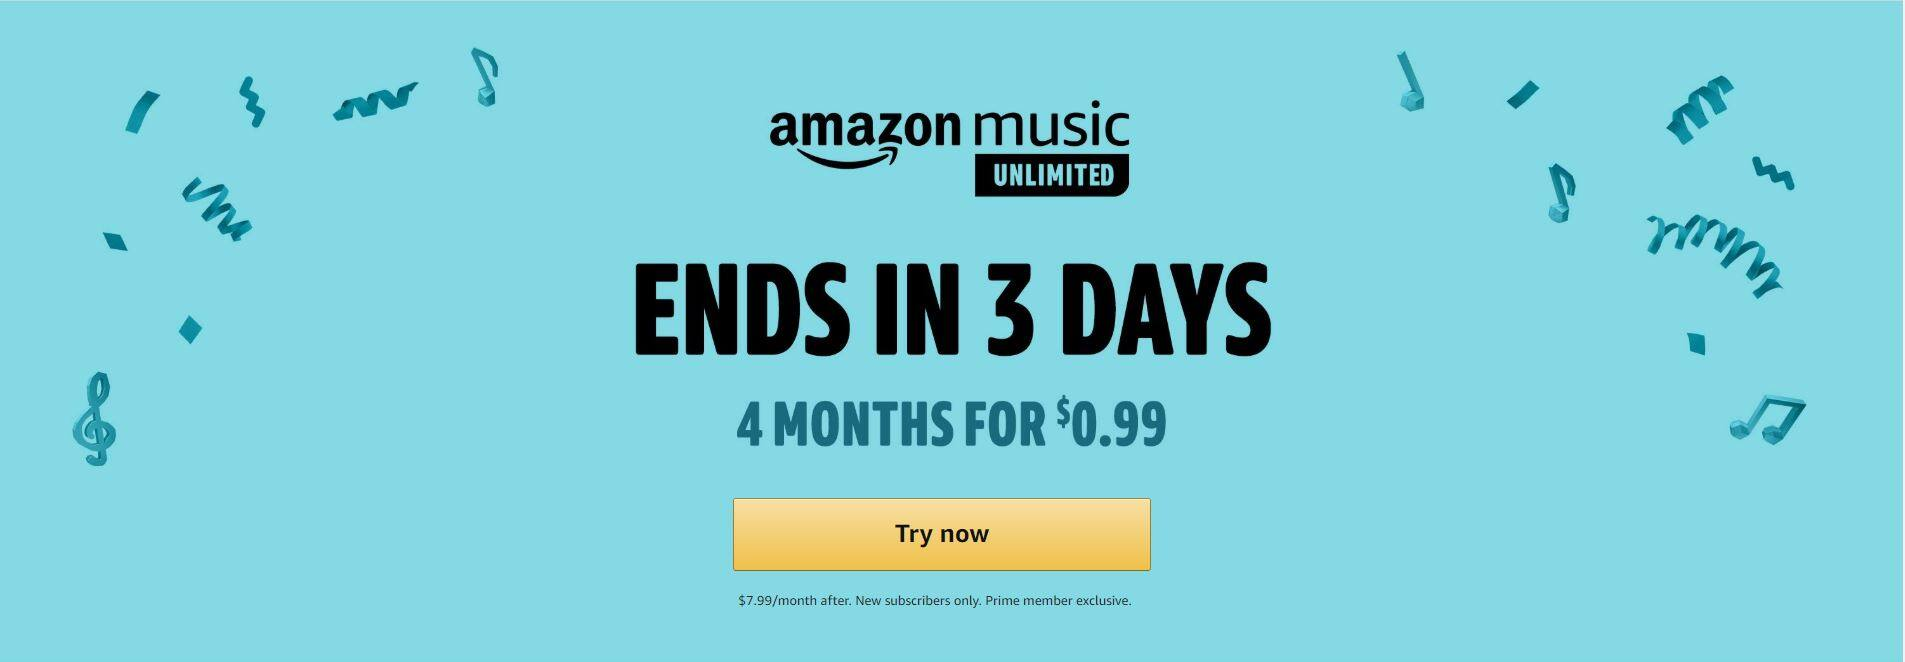 Amazon Music Unlimited 4 Months for $0.99